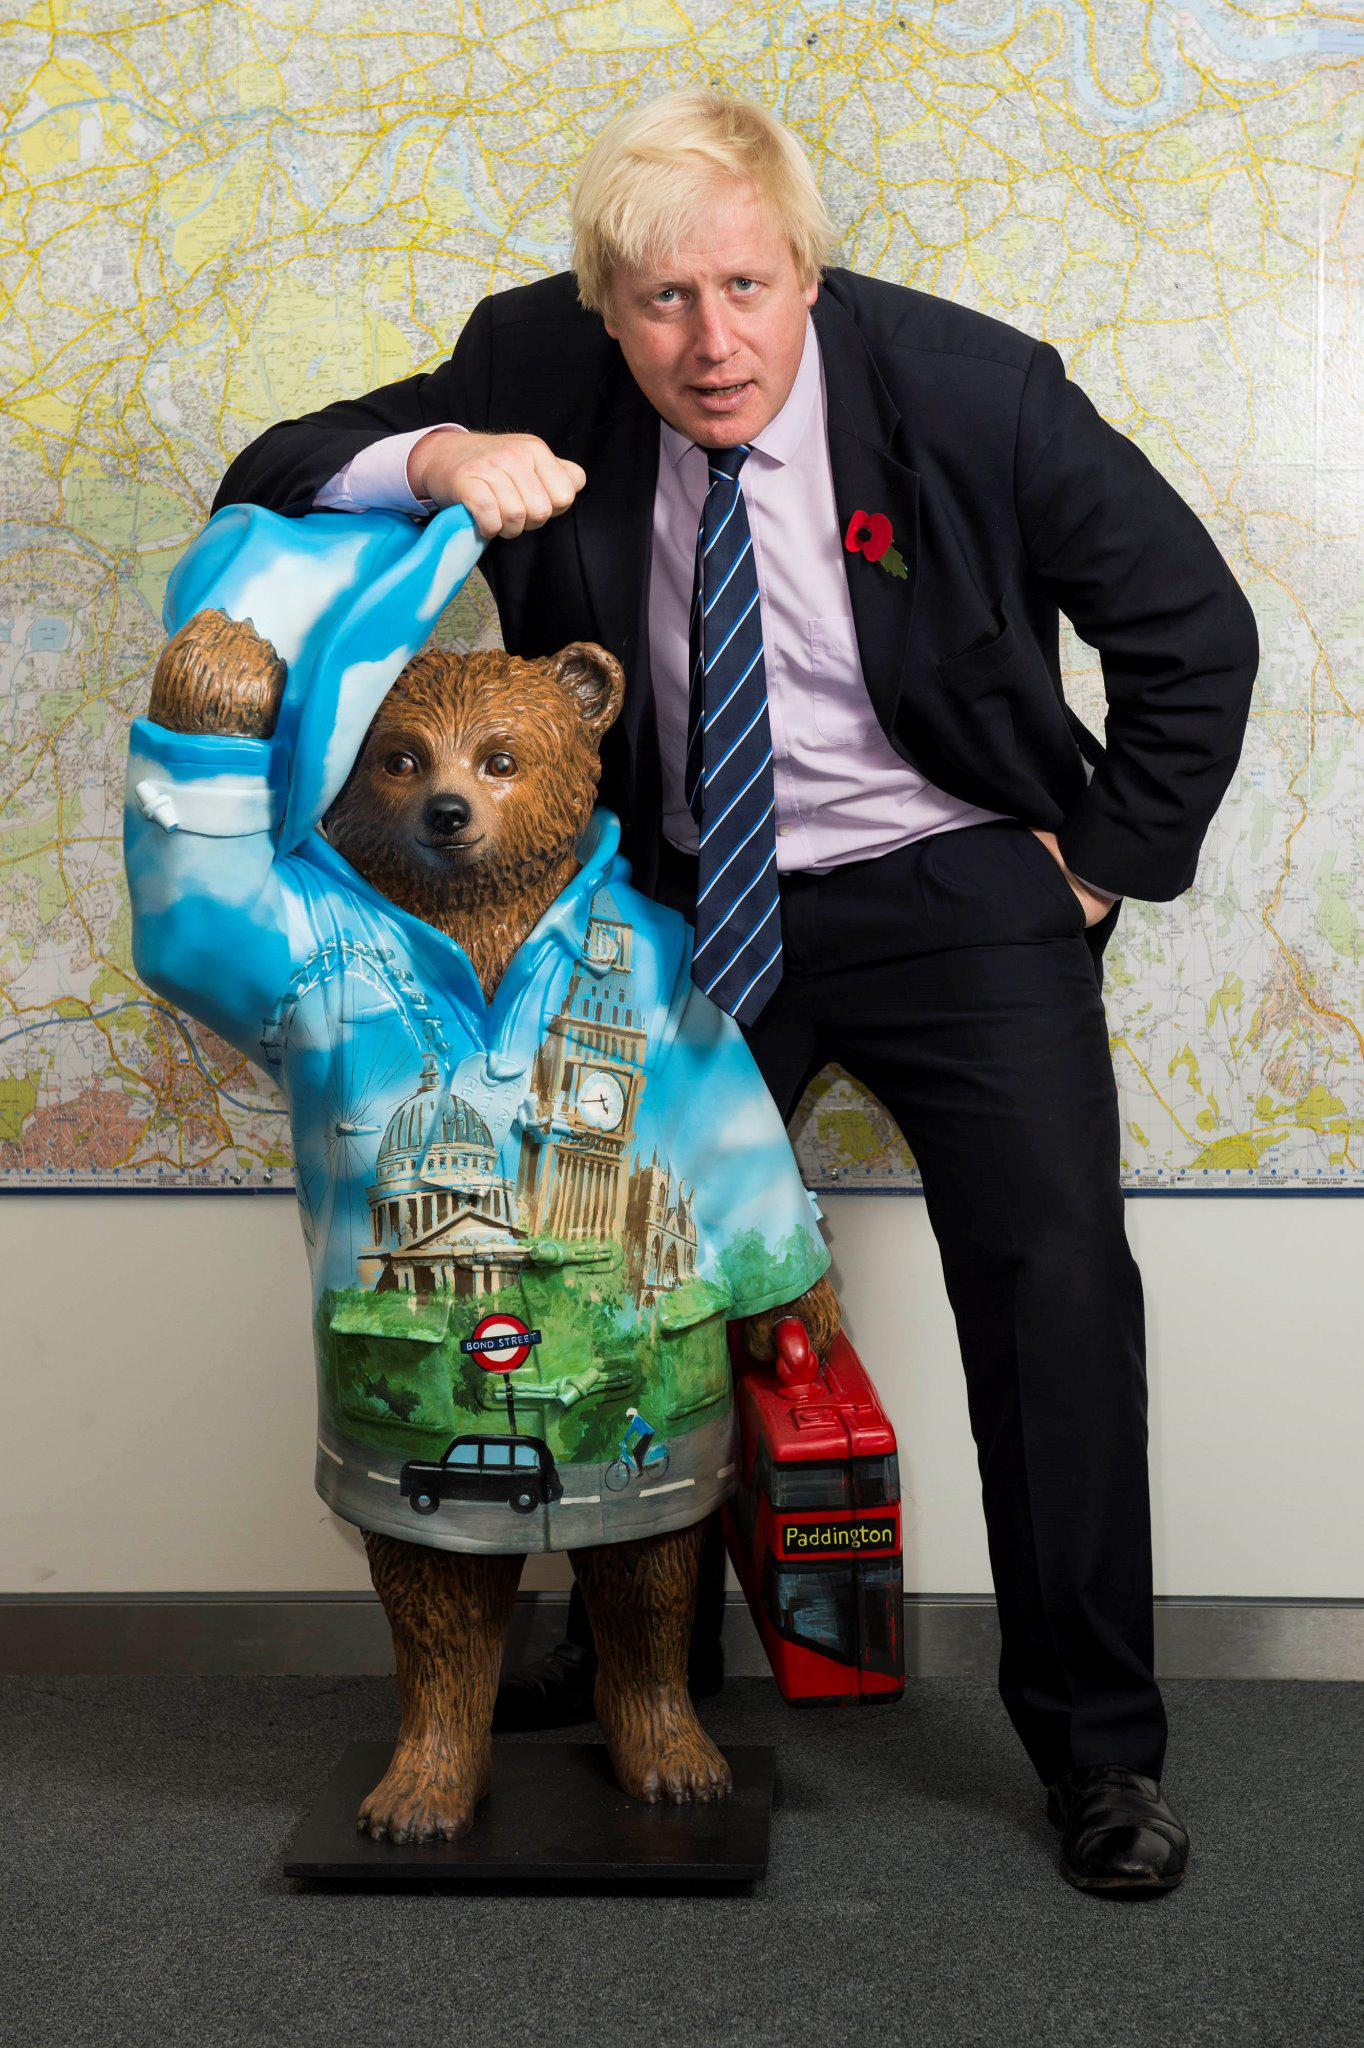 My #PaddingtonTrail bear is now up for auction for @NSPCC – bid now & he could be yours! http://t.co/6nikUpZKL3 http://t.co/9t0u4rym5U